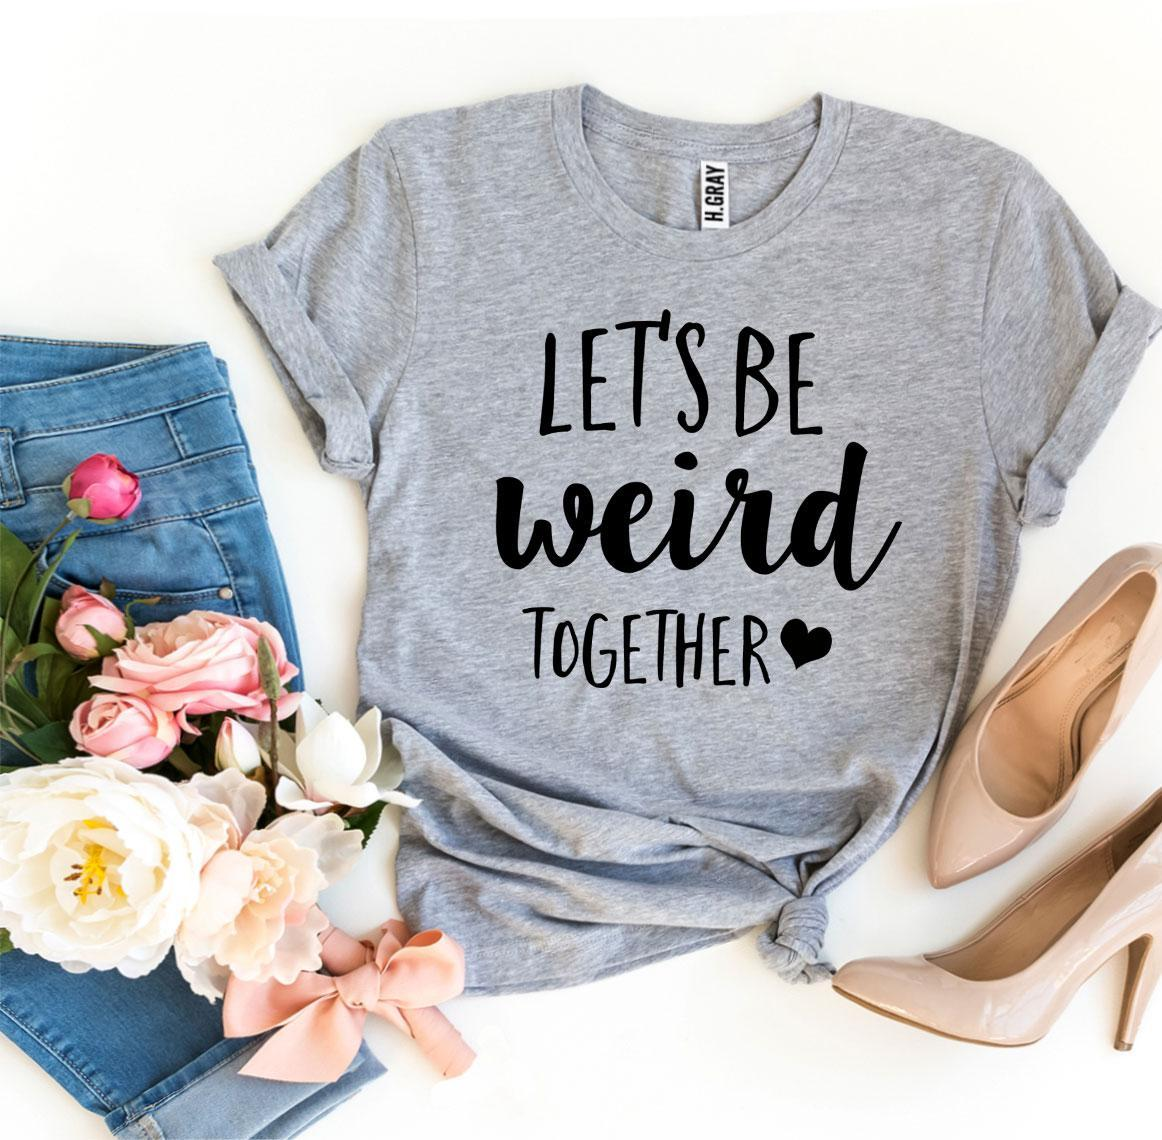 Let's Be Weird Together T-shirt